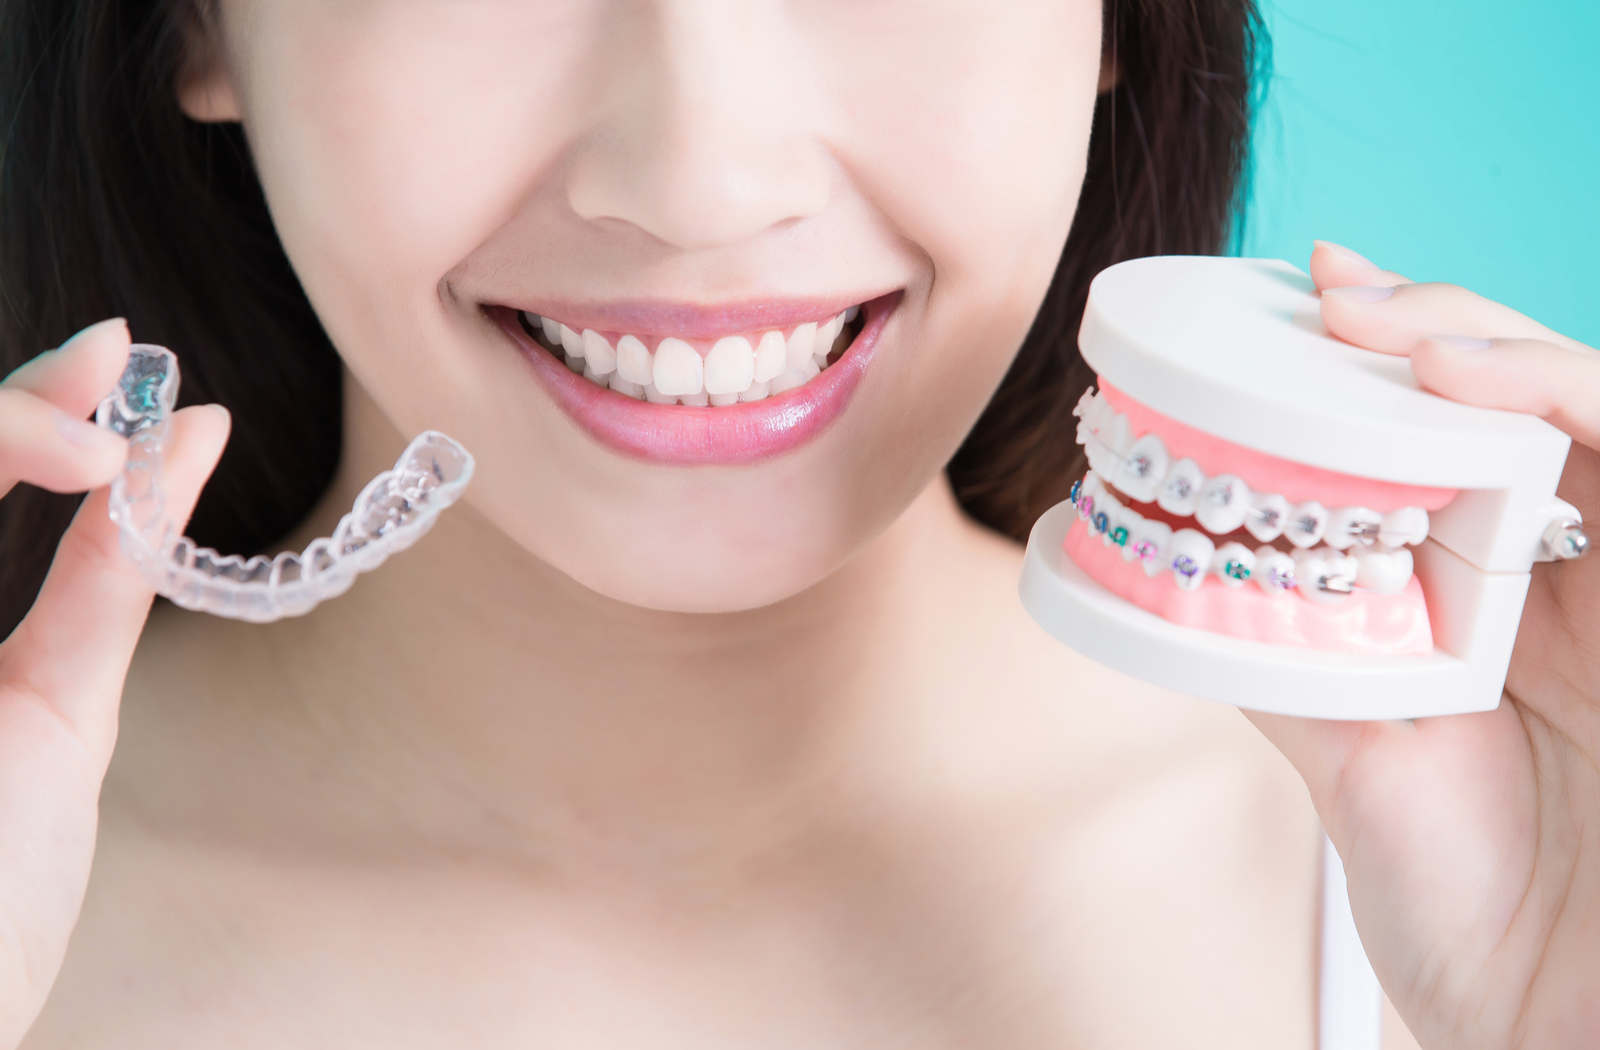 woman smiling holding an Invisalign aligner in one hand and a model of teeth with braces on them in the other